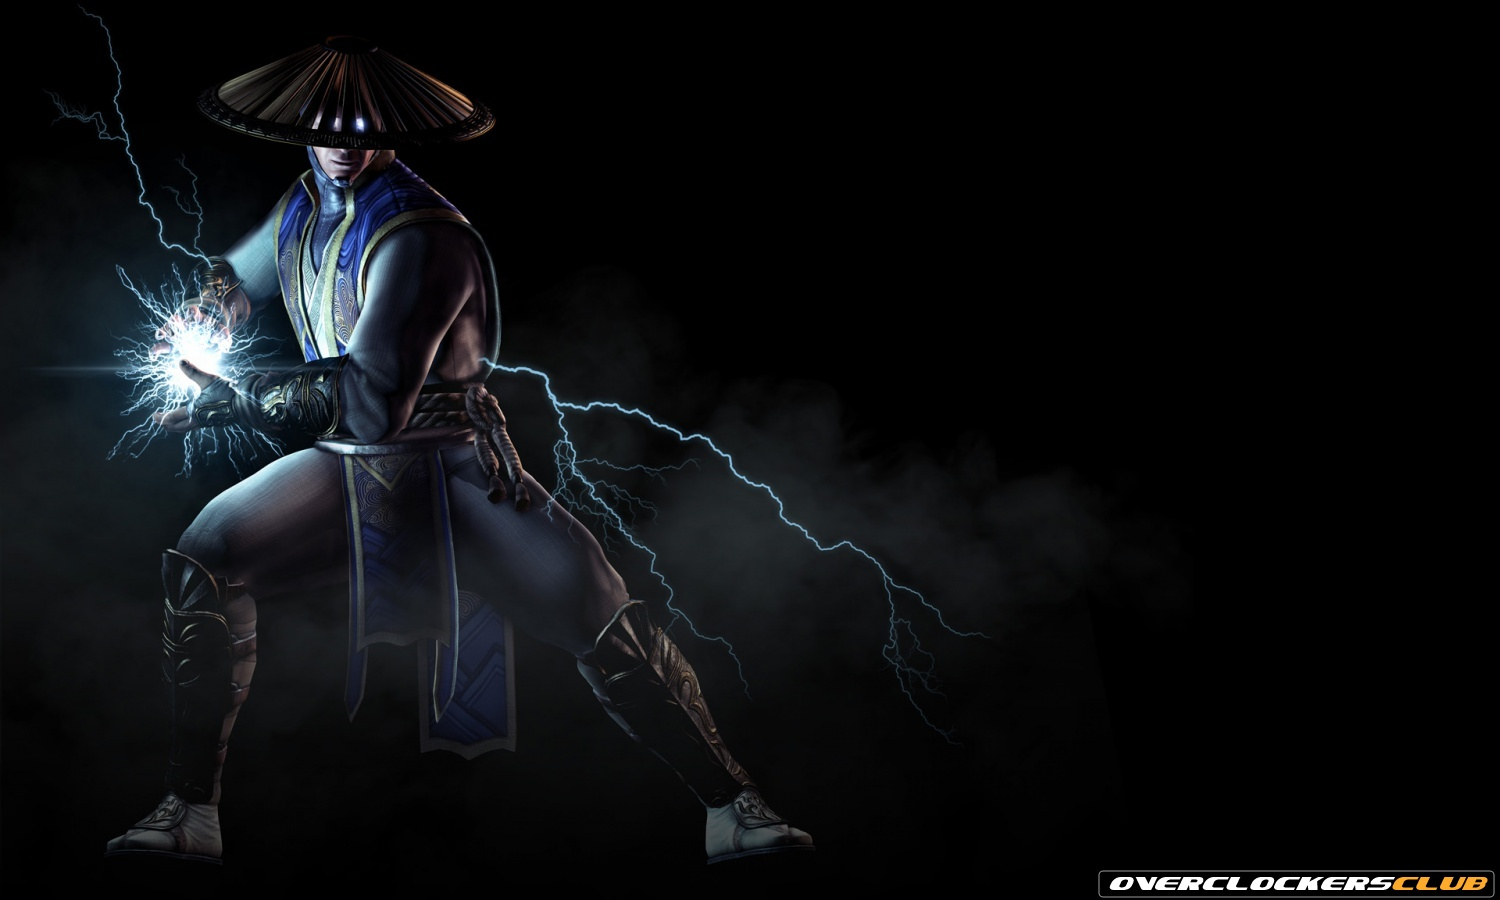 New Mortal Kombat X Gameplay Video Walks Us Through Raiden's Character Variations